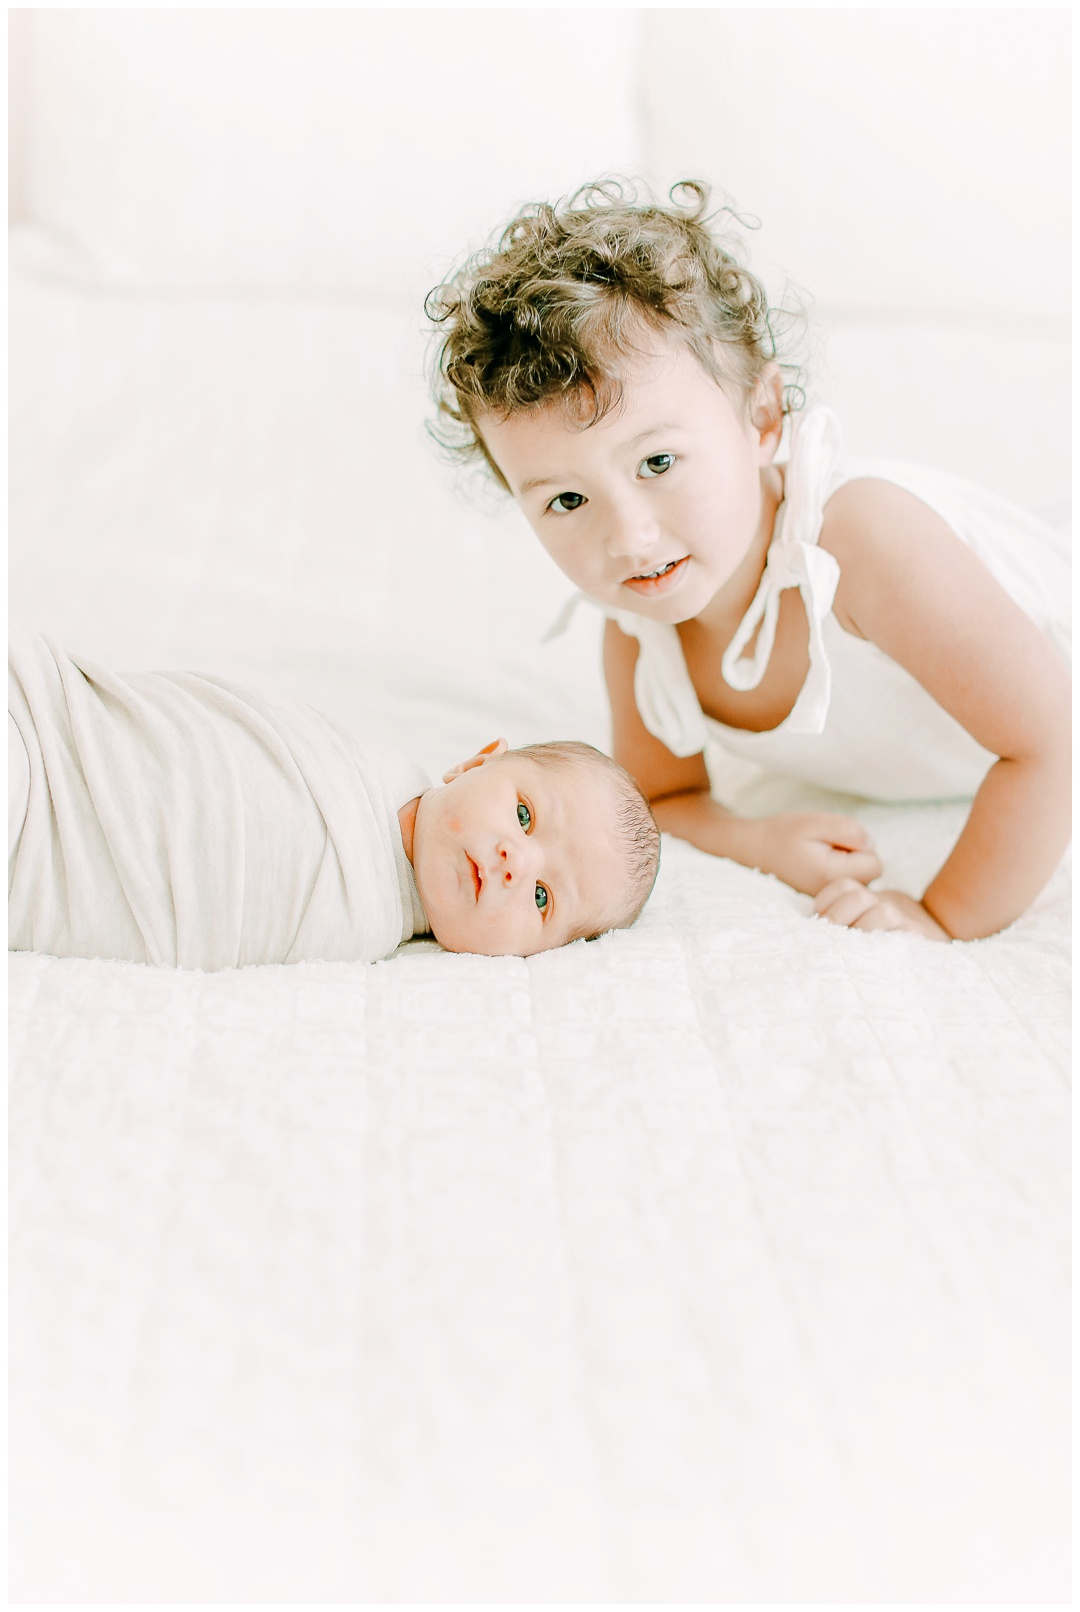 The_Lewis_Family_Lifestyle_Newport_Beach_Family_Photographer_Orange_County_Newborn_Photography_Cori_Kleckner_Photography_Orange_County_Beach_Photographer_Newborn_Photos_Session_Crystal_Cove_Session__1591.jpg